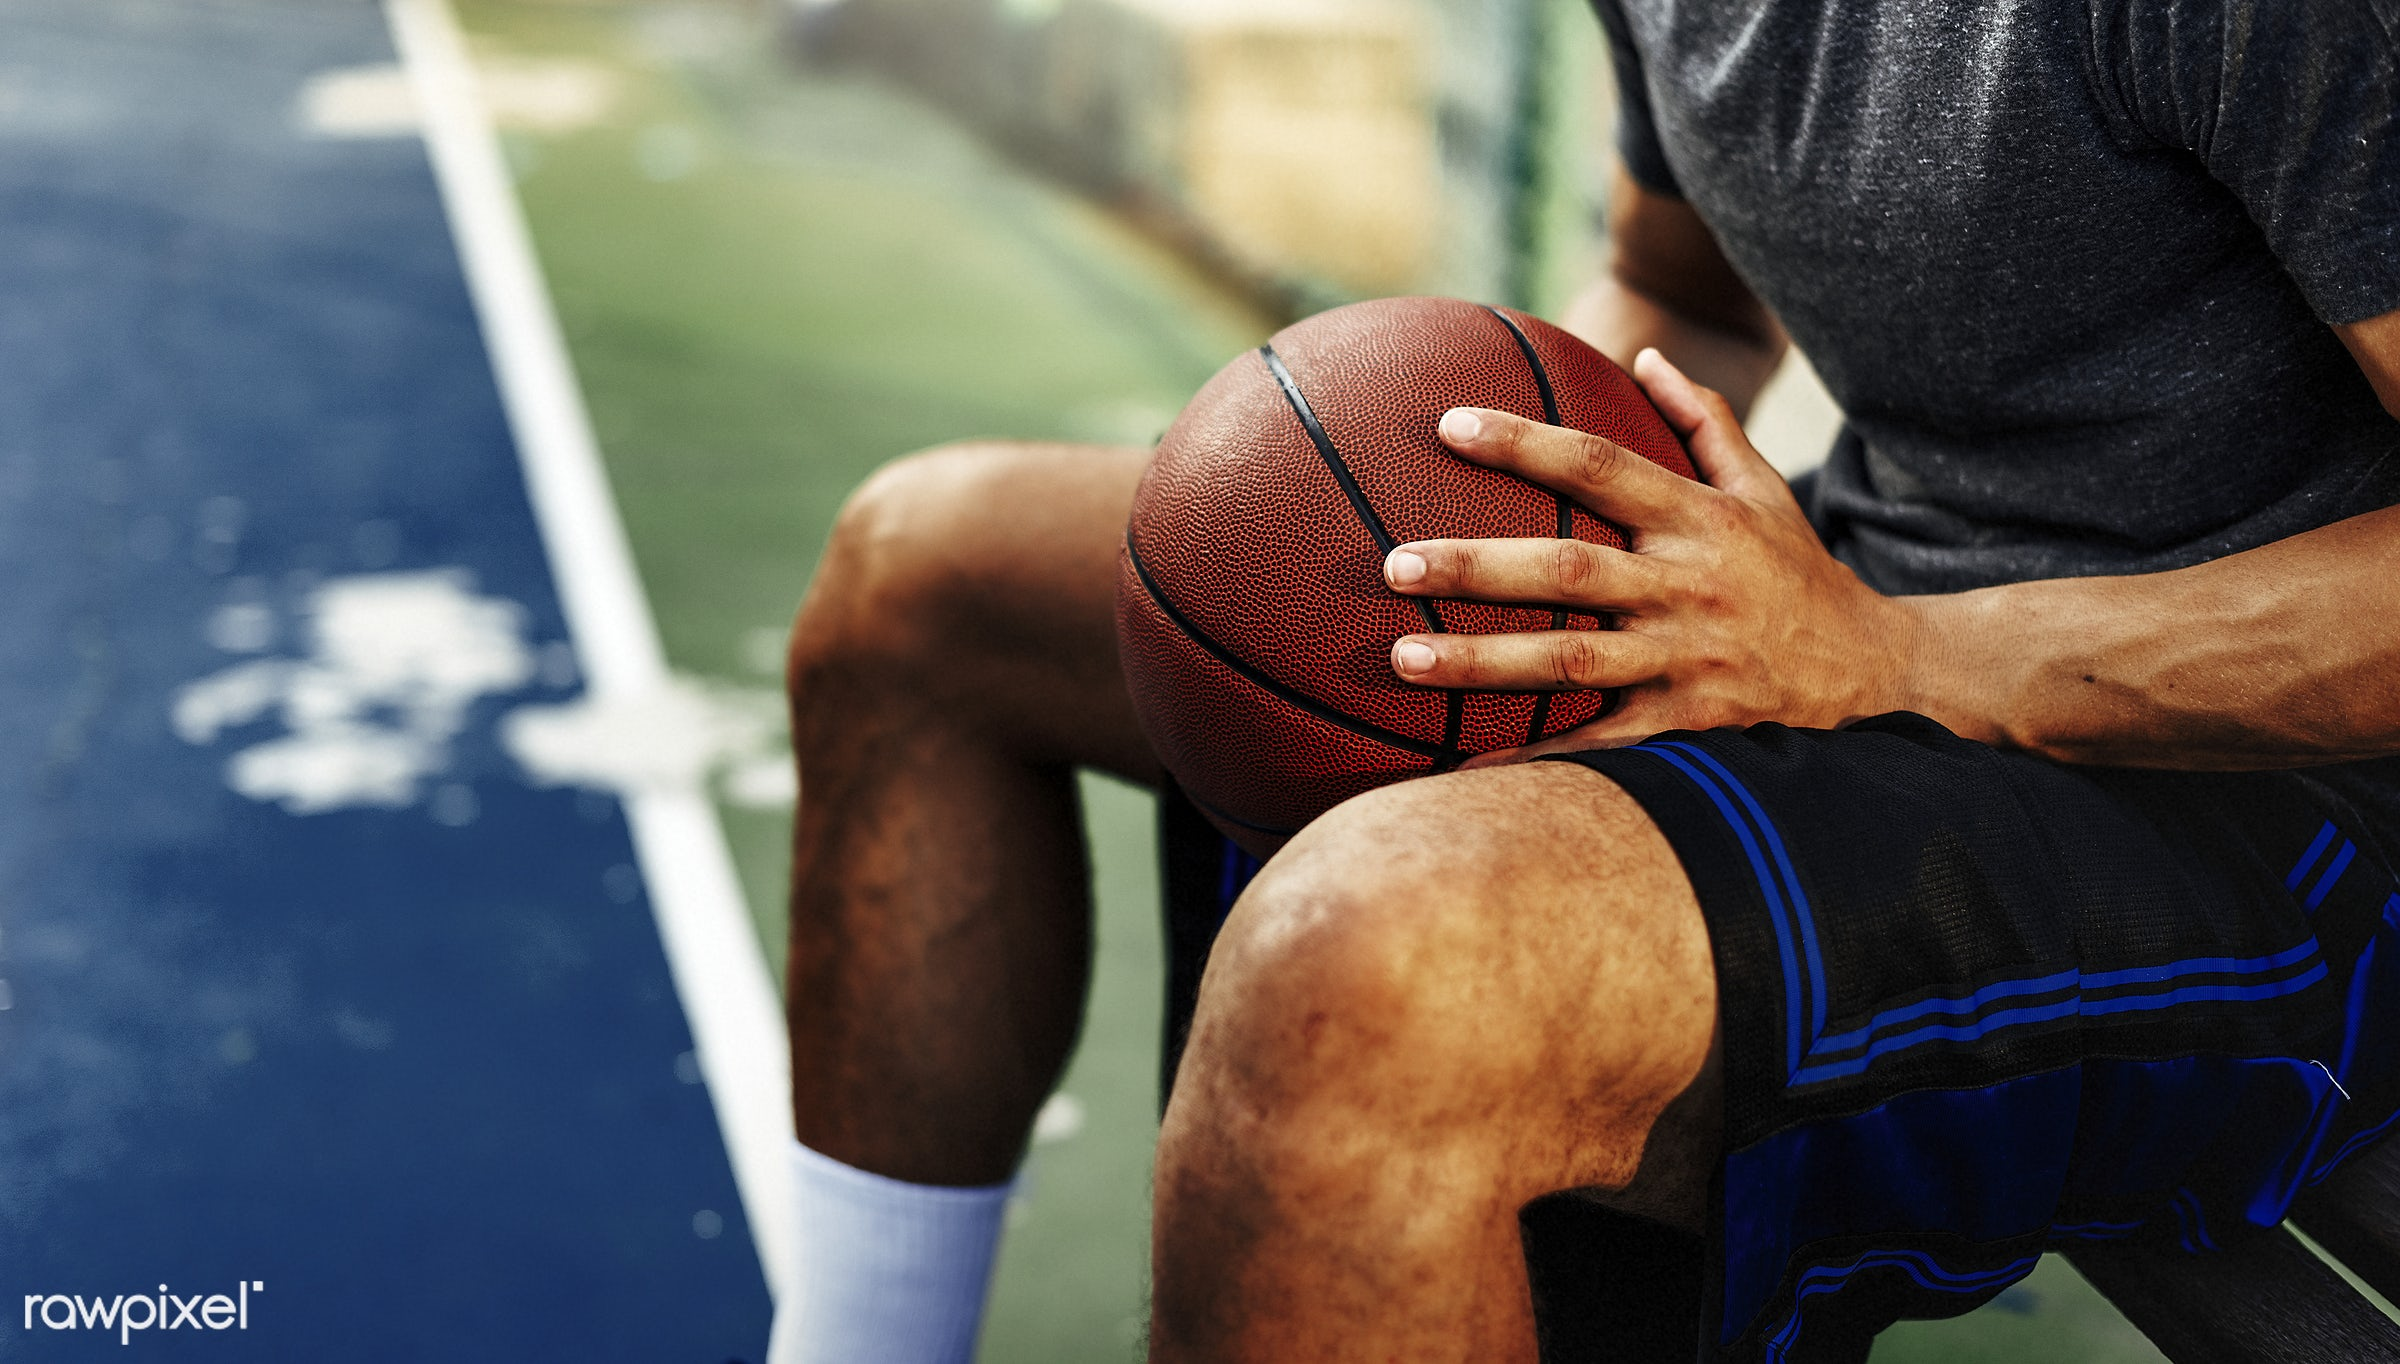 activity, alone, basketball, boy, caucasian, exercise, game, gymnasium, man, one, play, player, practice, shoot, sport,...